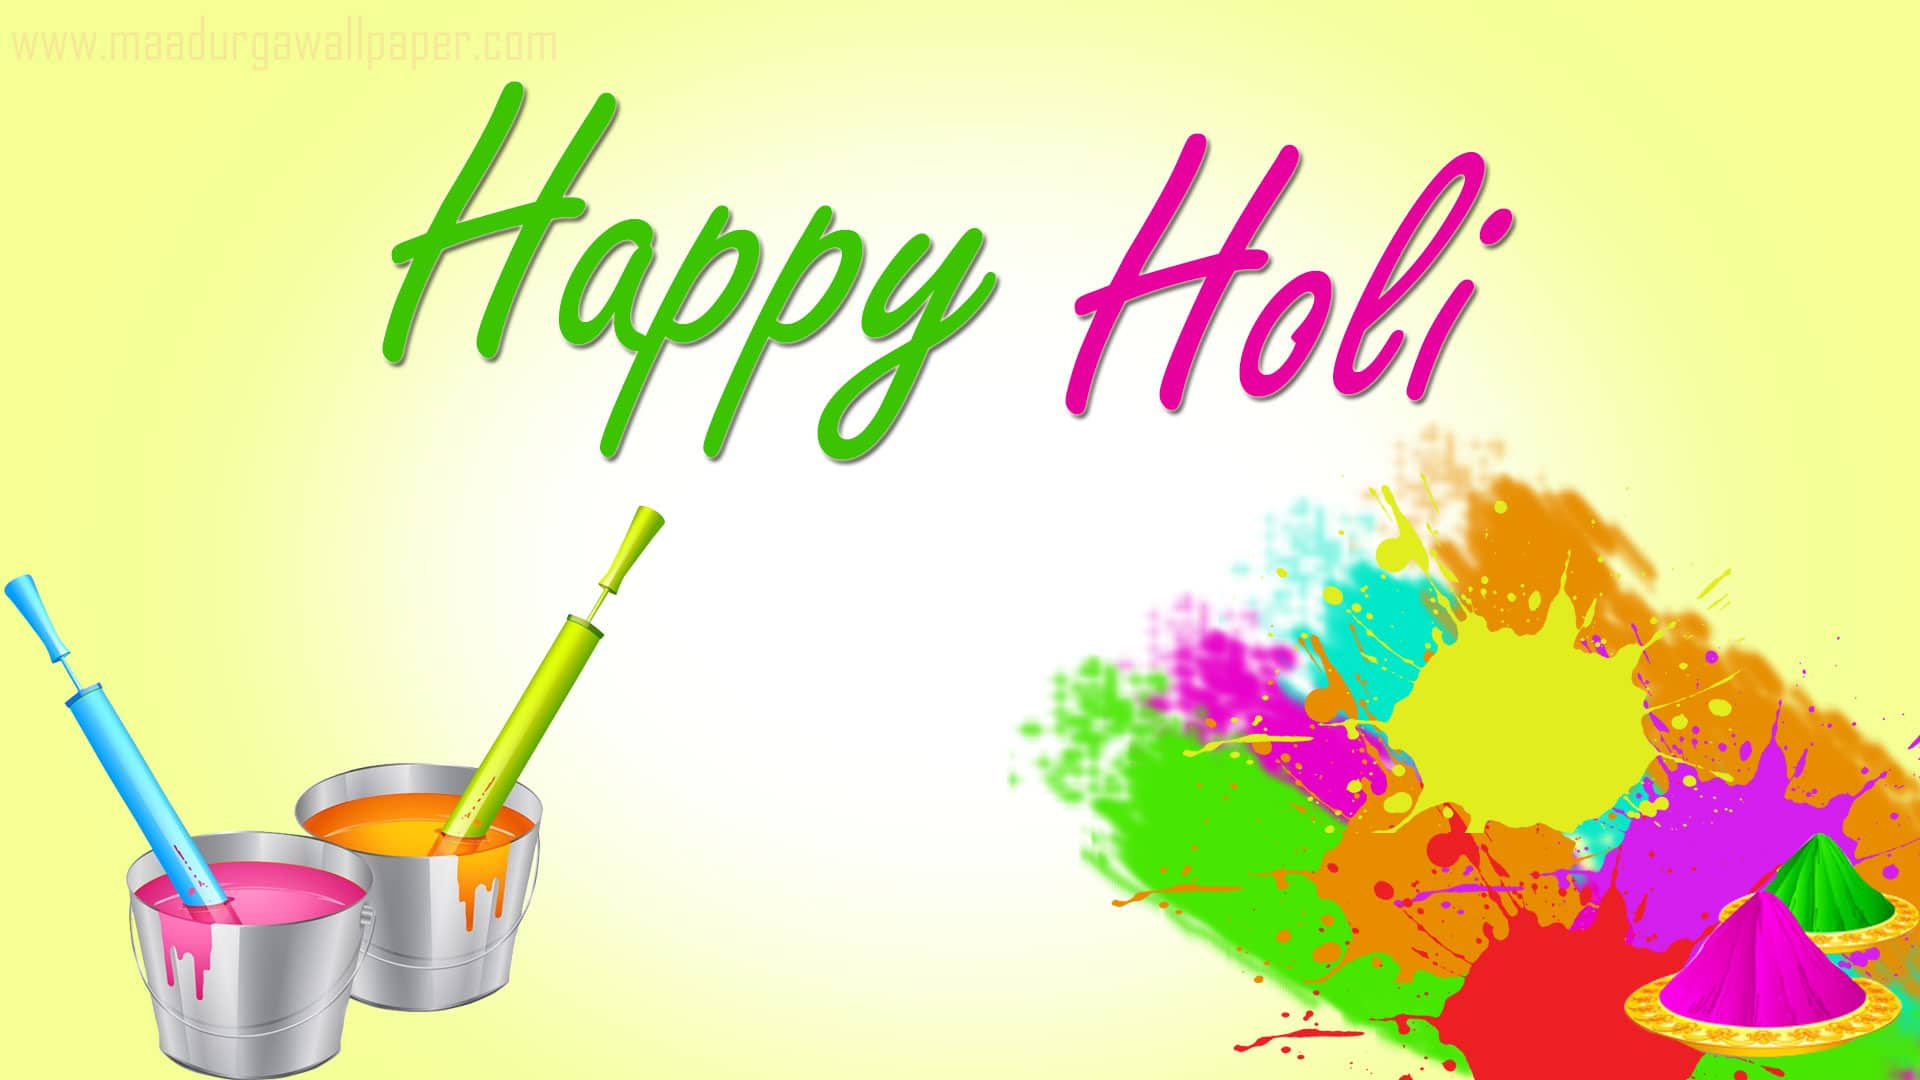 Happy Holi Images 2019 Download Wallpaper Images For Best Wishes 1920x1080